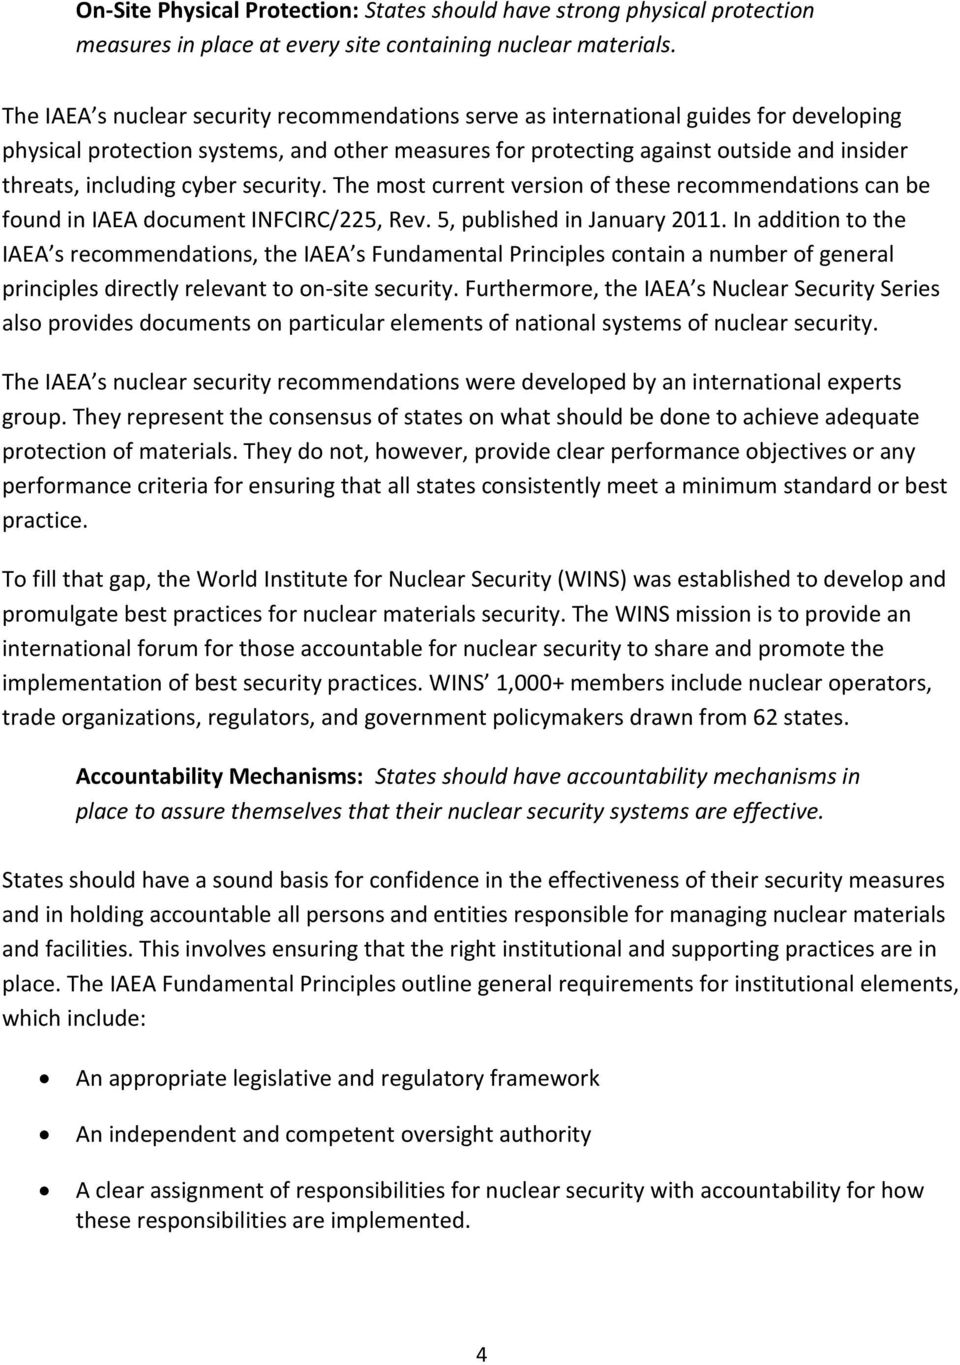 cyber security. The most current version of these recommendations can be found in IAEA document INFCIRC/225, Rev. 5, published in January 2011.